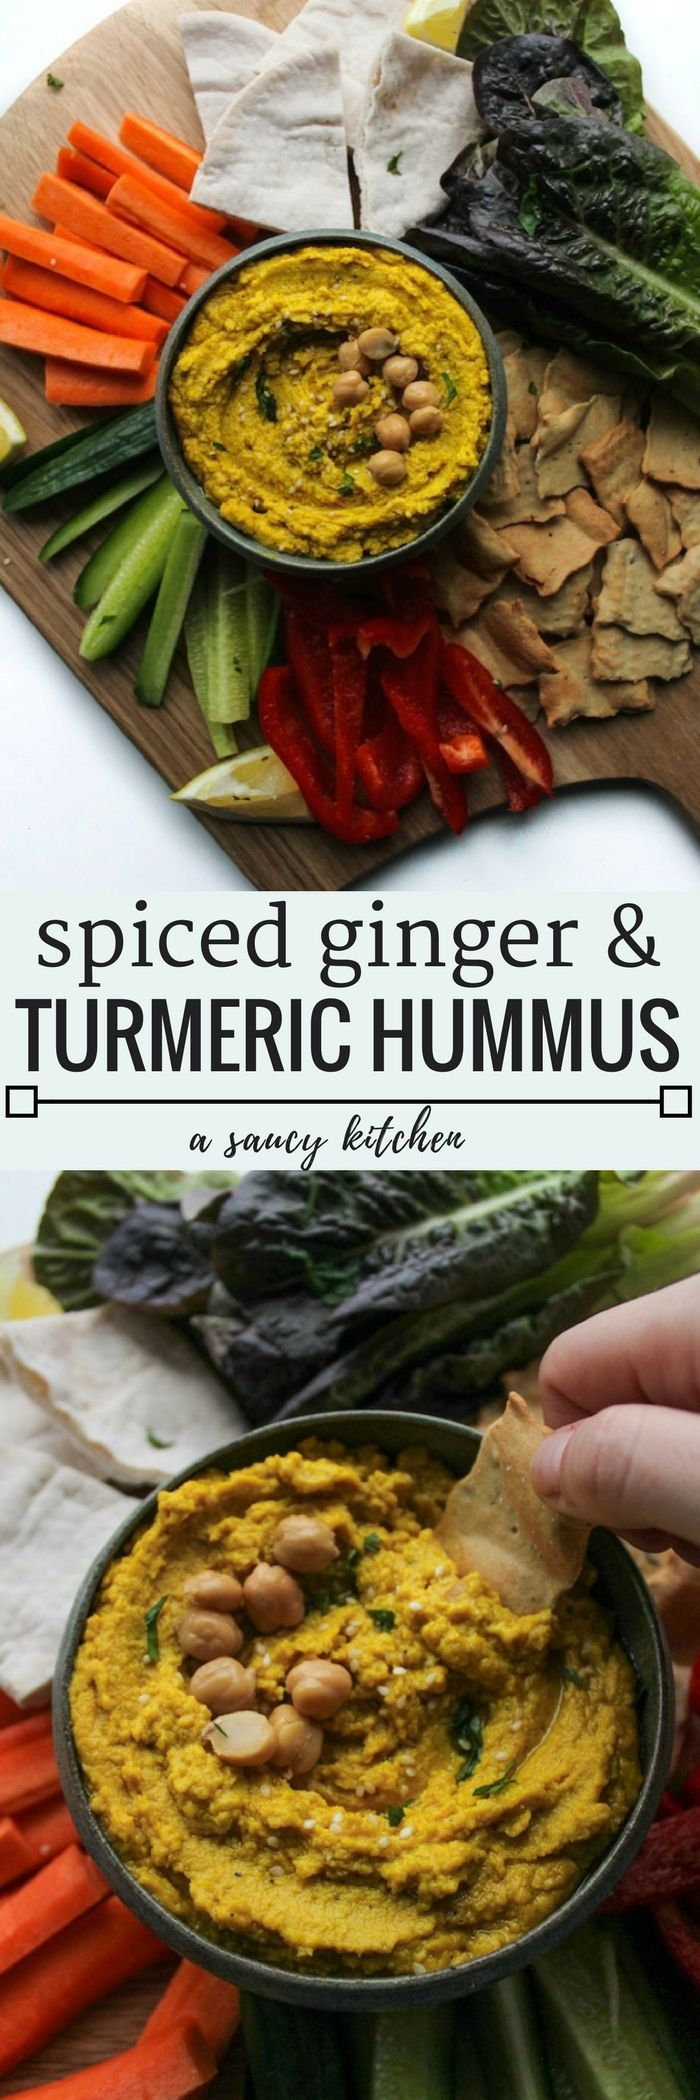 Ginger & Turmeric Hummus - a classic dip with a healthy twist | Gluten Free + Vegan